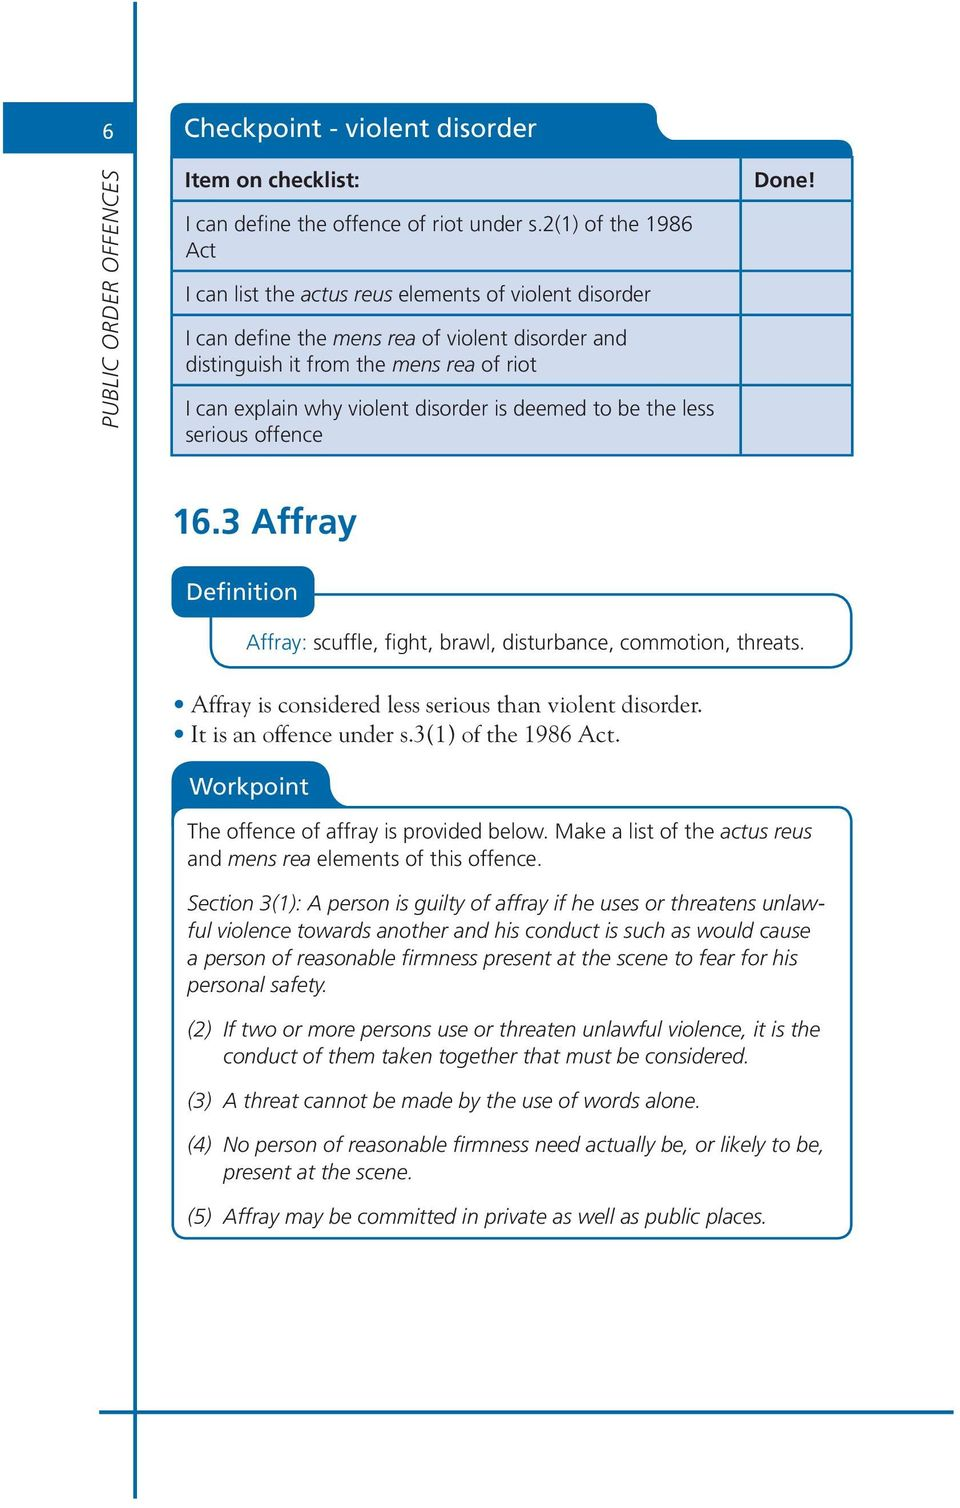 what does the word affray mean